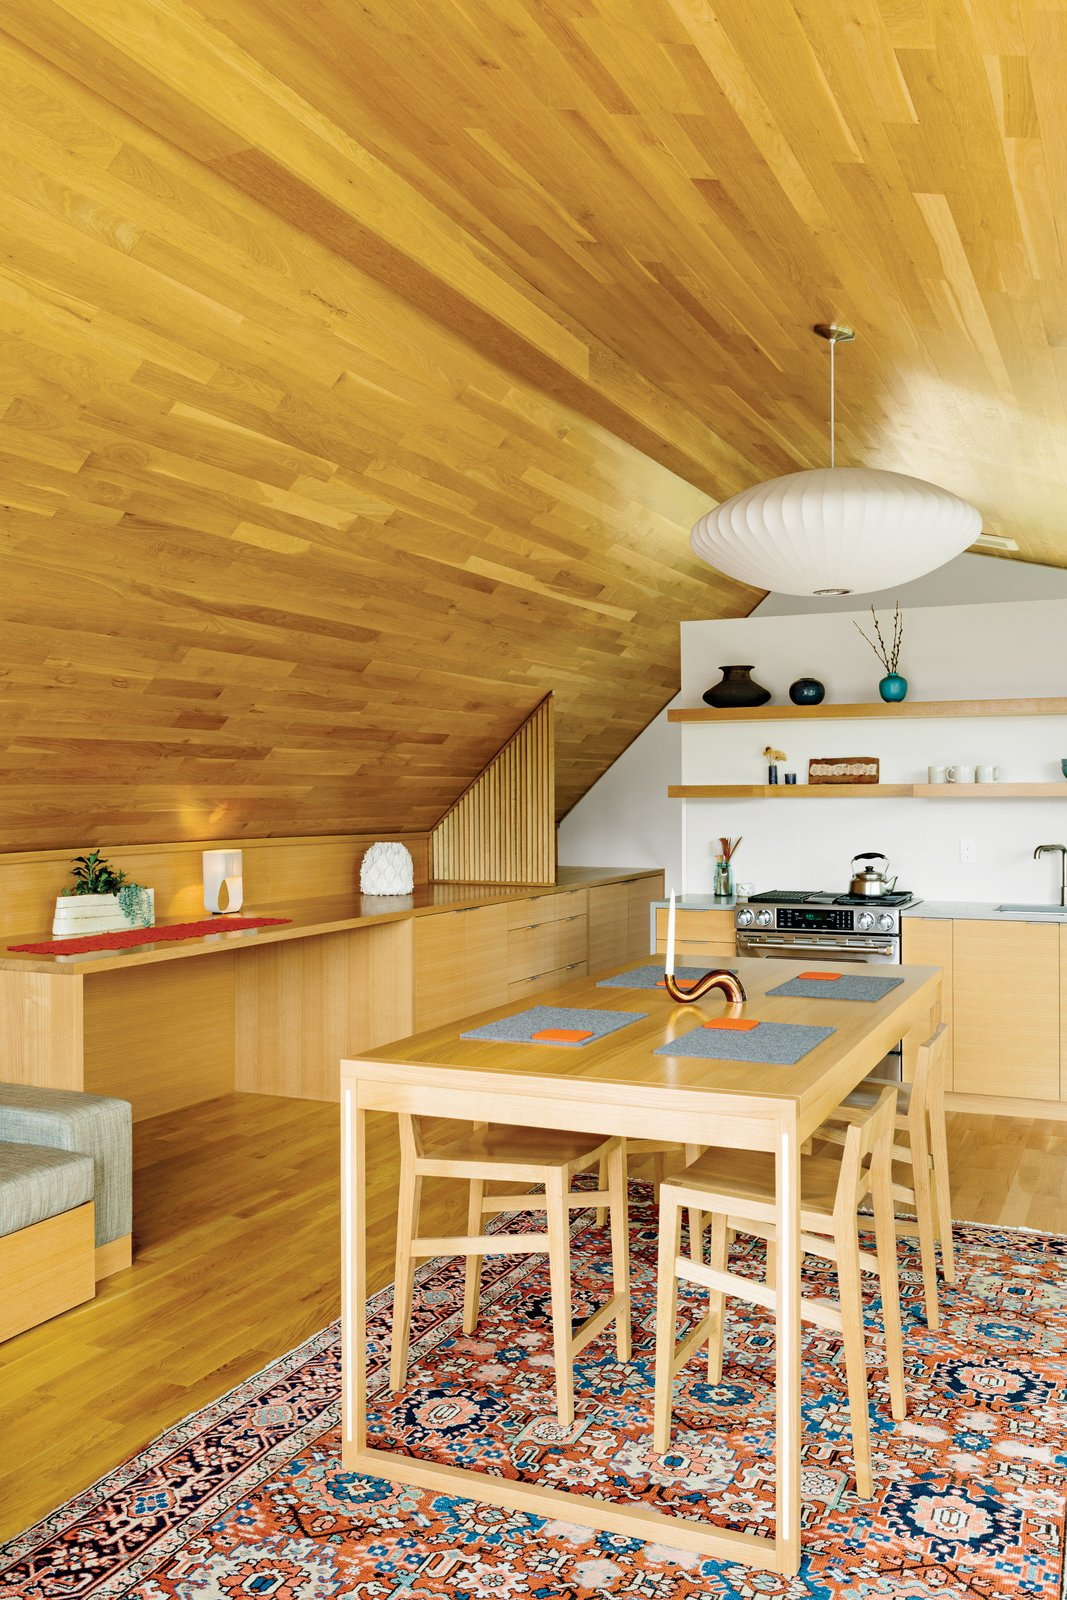 Strips of white-oak flooring line the interior of the studio, created by designer Jeff Vincent and PATH Architecture. The George Nelson Bubble Lamp Saucer pendant is available at the Dwell Store; the kitchen cabinets and appliances are by Jenn-Air. All accessories are from Canoe and Relish. Tagged: Dining Room, Chair, Table, Pendant Lighting, Rug Floor, and Light Hardwood Floor.  Best Photos from Salvaged Wood Renovation in Portland